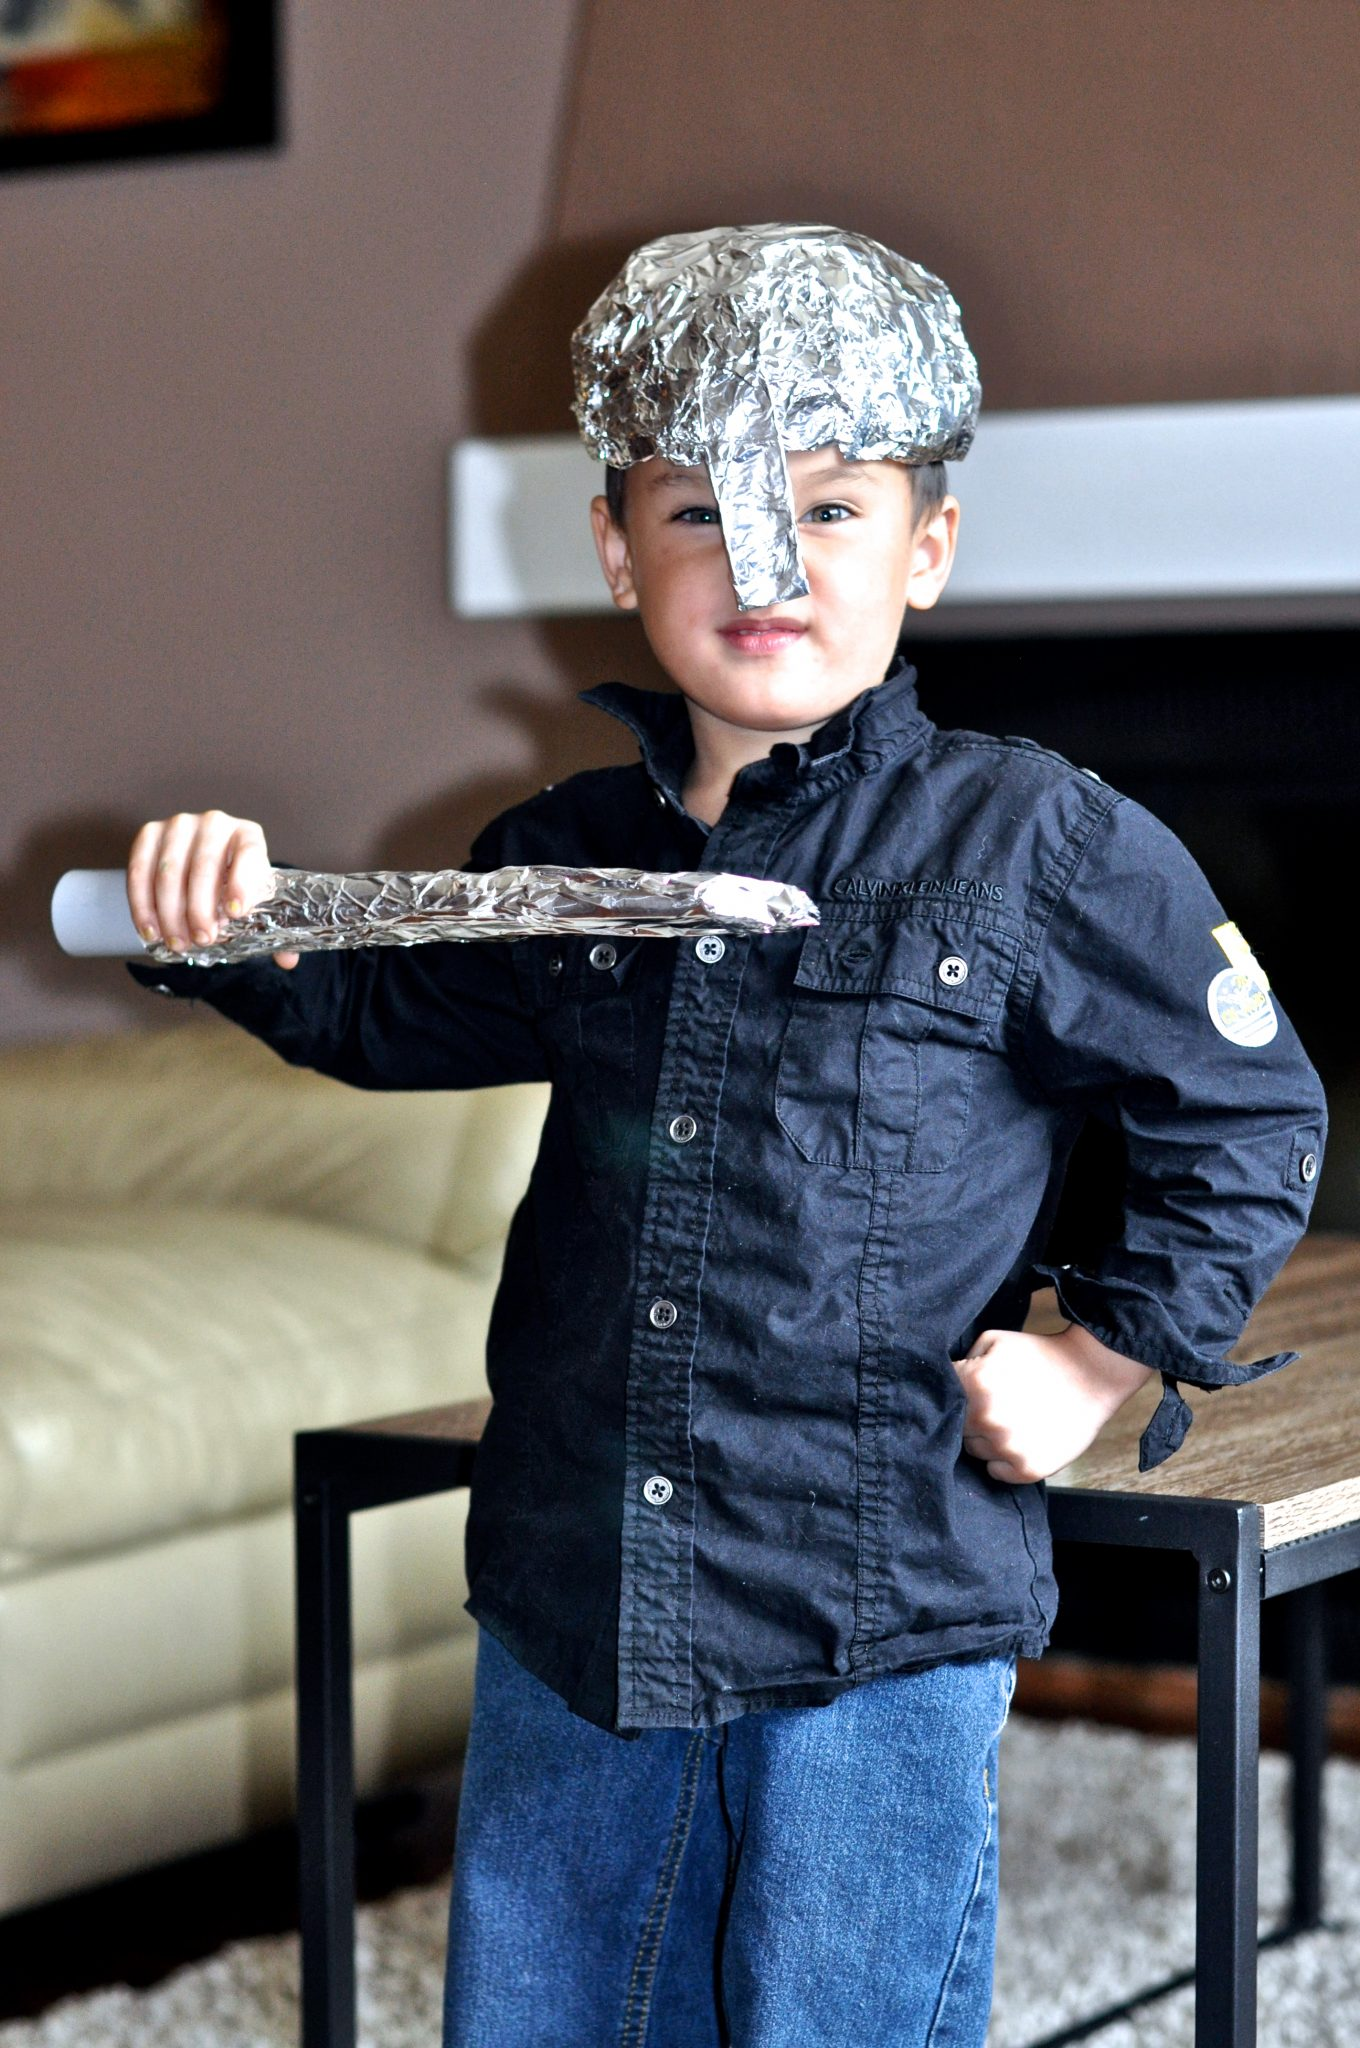 Make your own tinfoil Goliath armor: Jesus Storybook Bible David and Goliath free lesson plan